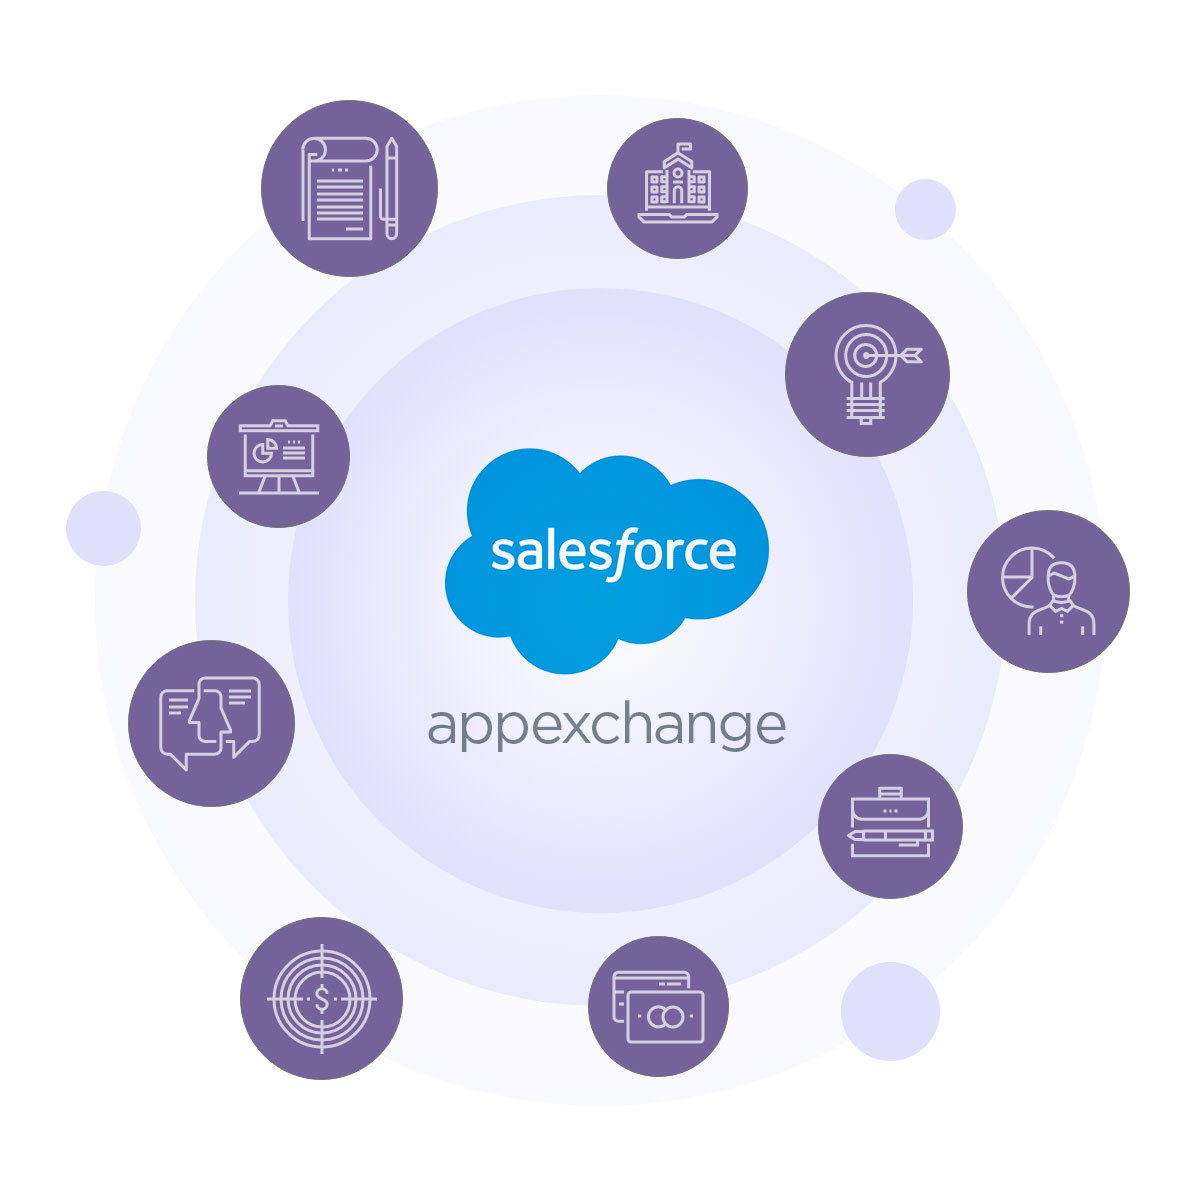 Salesforce Appexchange integrations